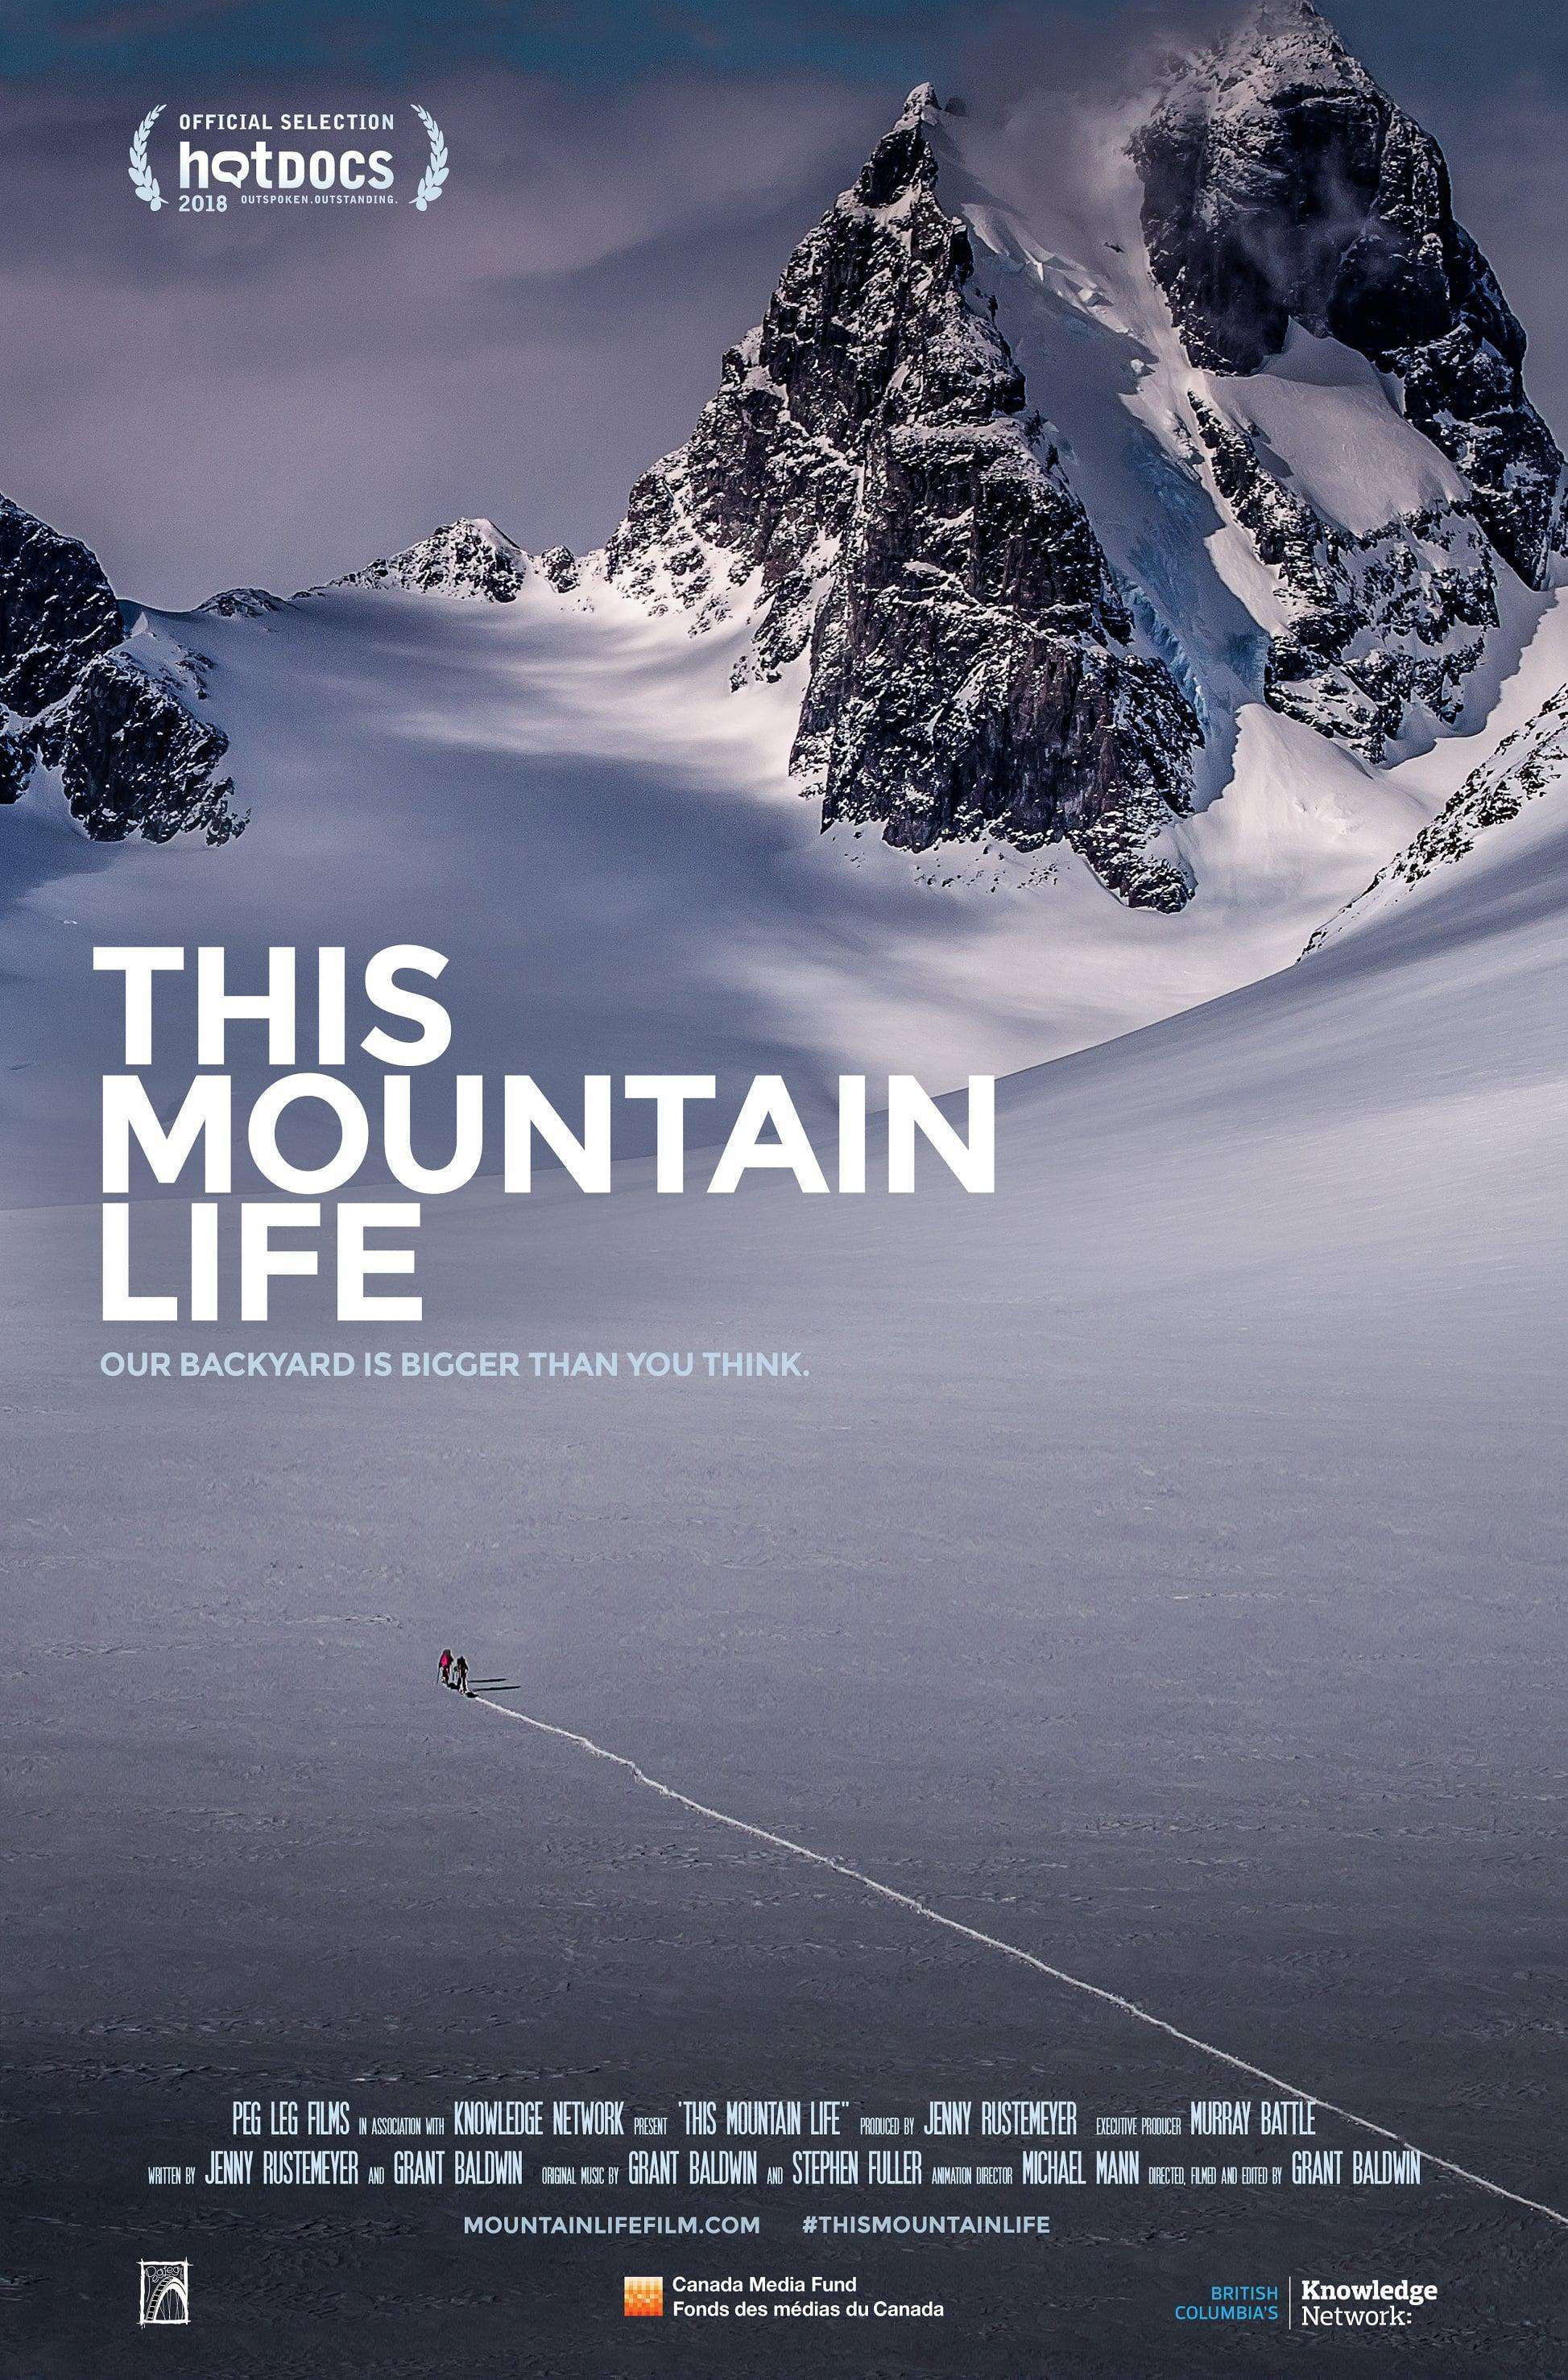 This Mountain Life Movie Watch Online Find Where To Stream Full Movie In Hd 24reel